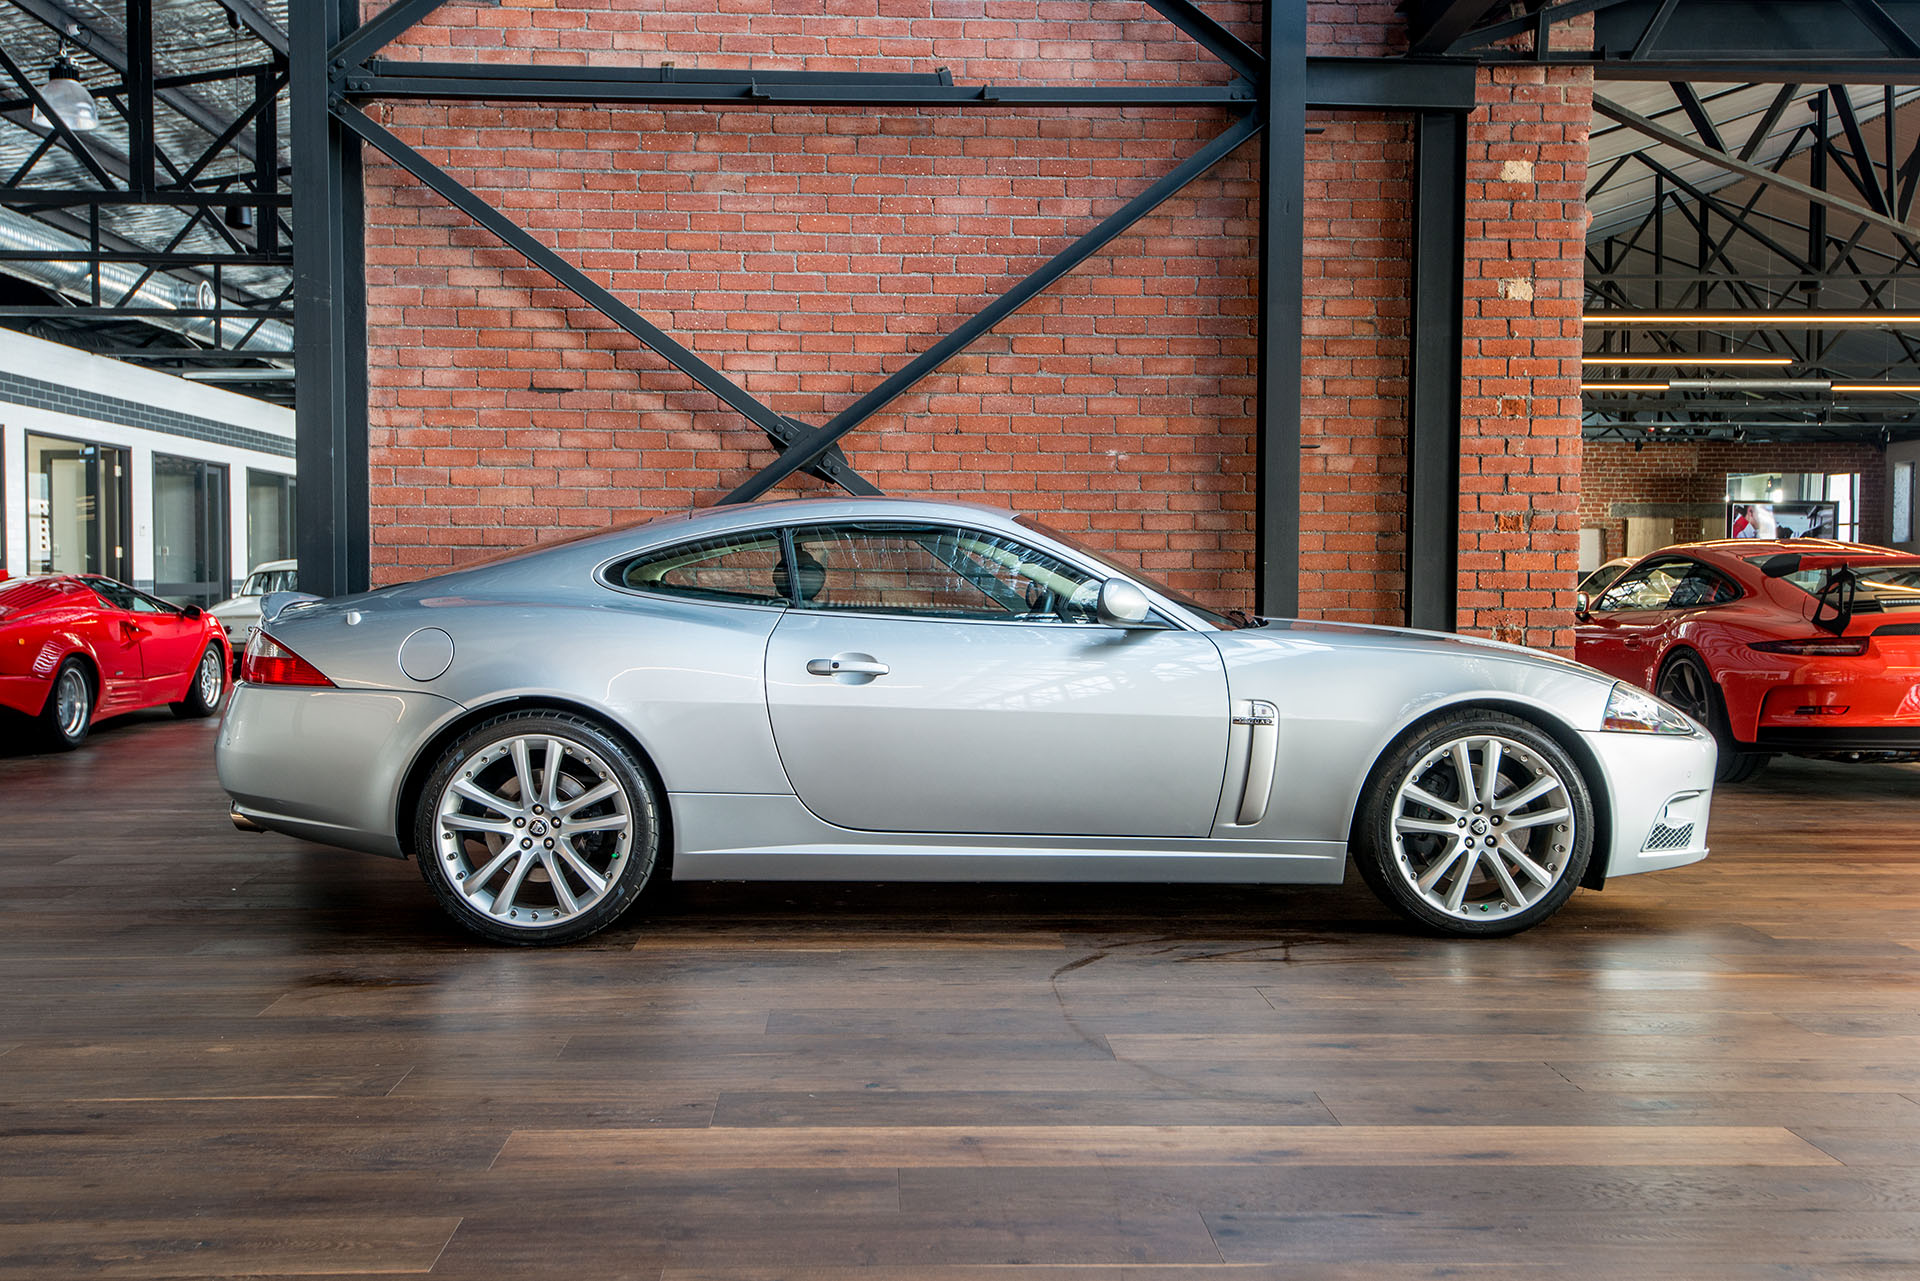 Electric Ride On Cars >> 2007 Jaguar XKR Coupe - Richmonds - Classic and Prestige ...